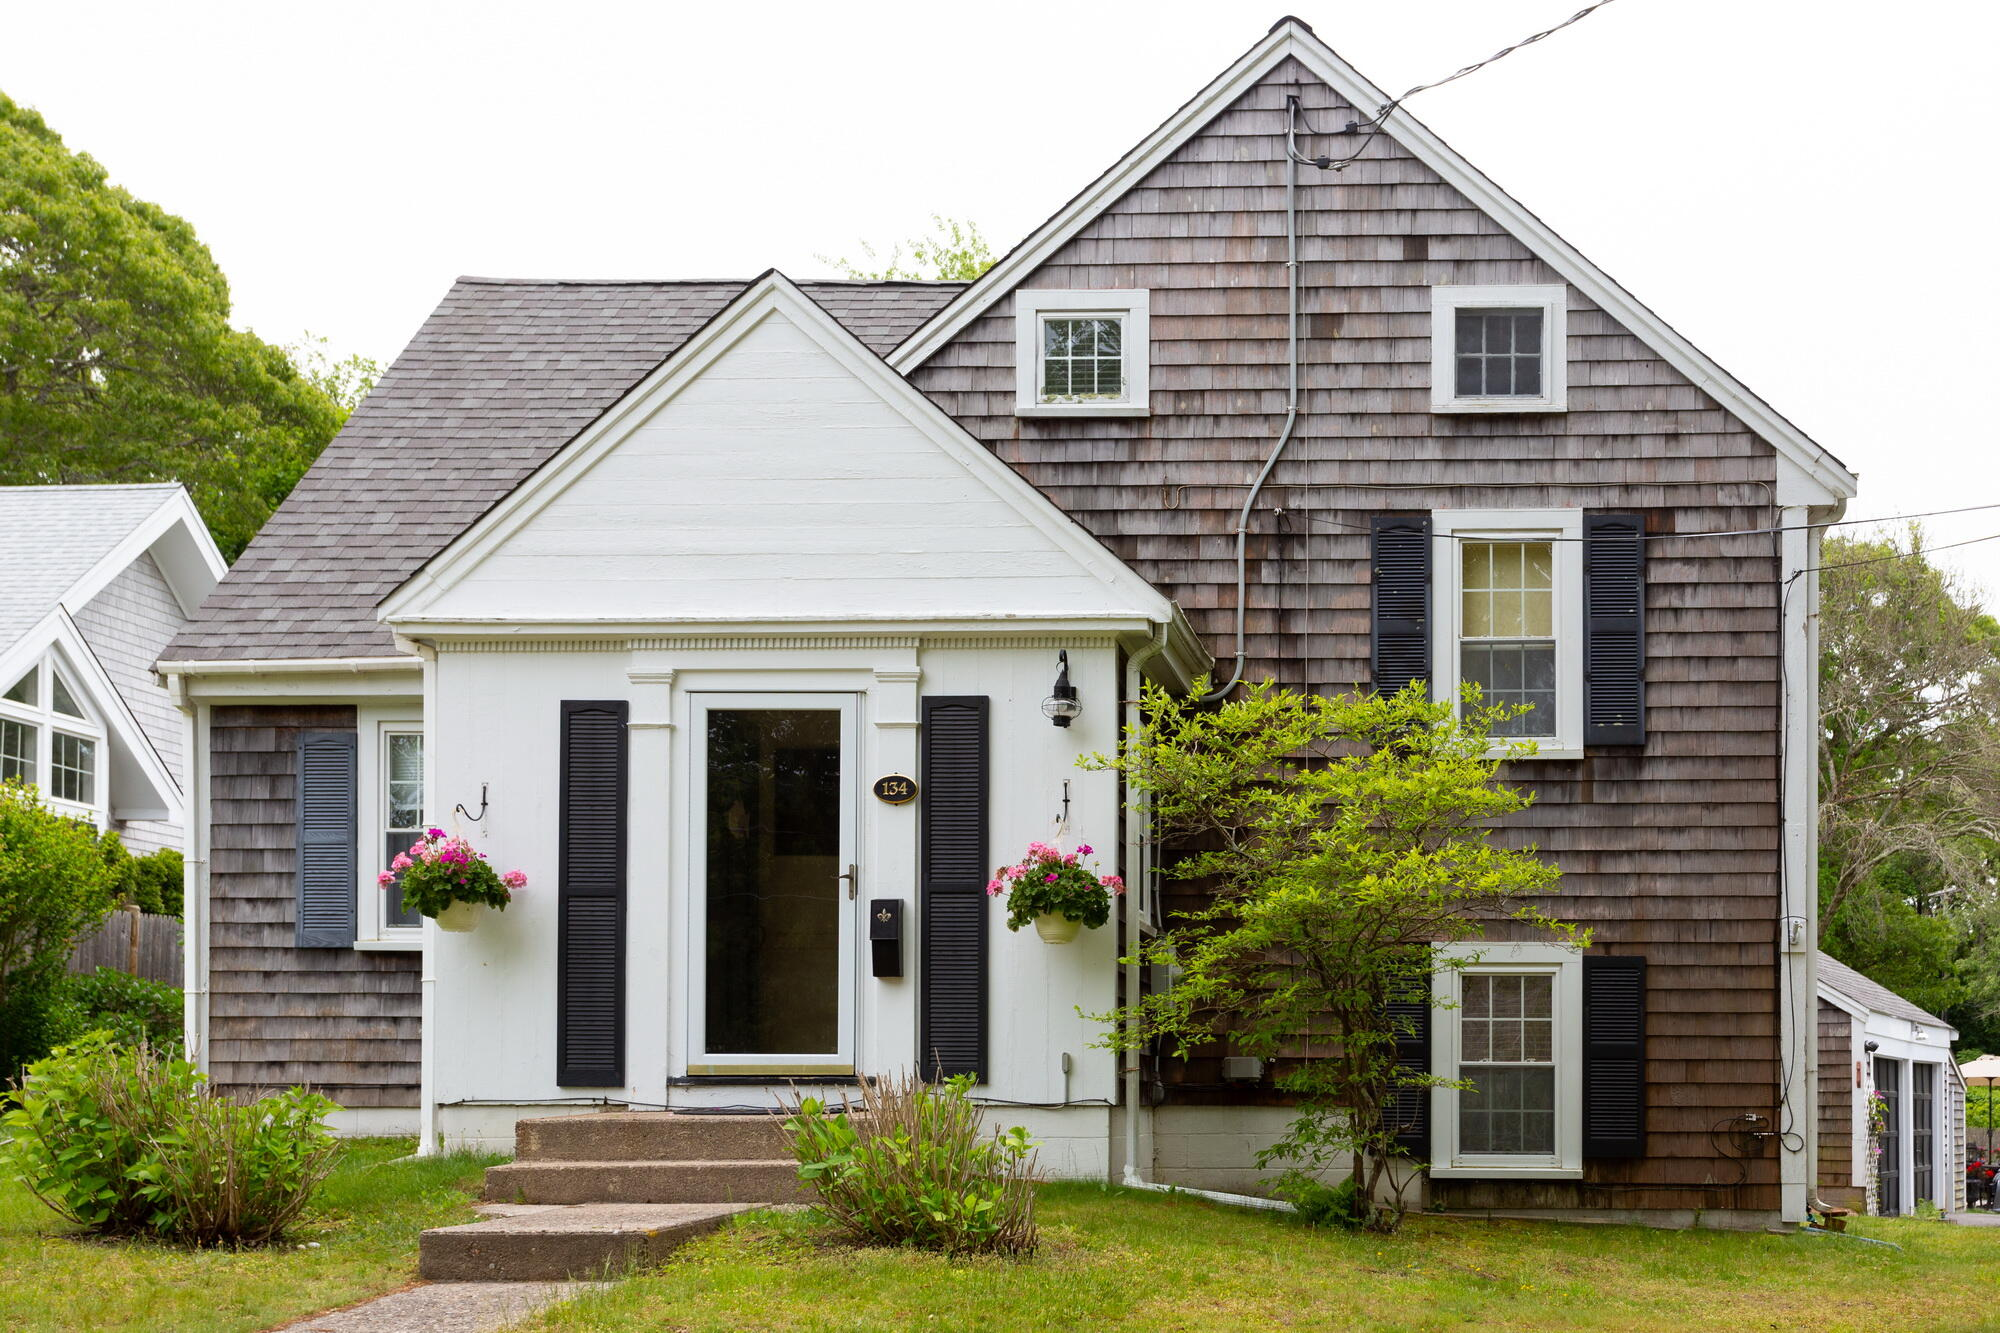 134-tower-hill-road-osterville